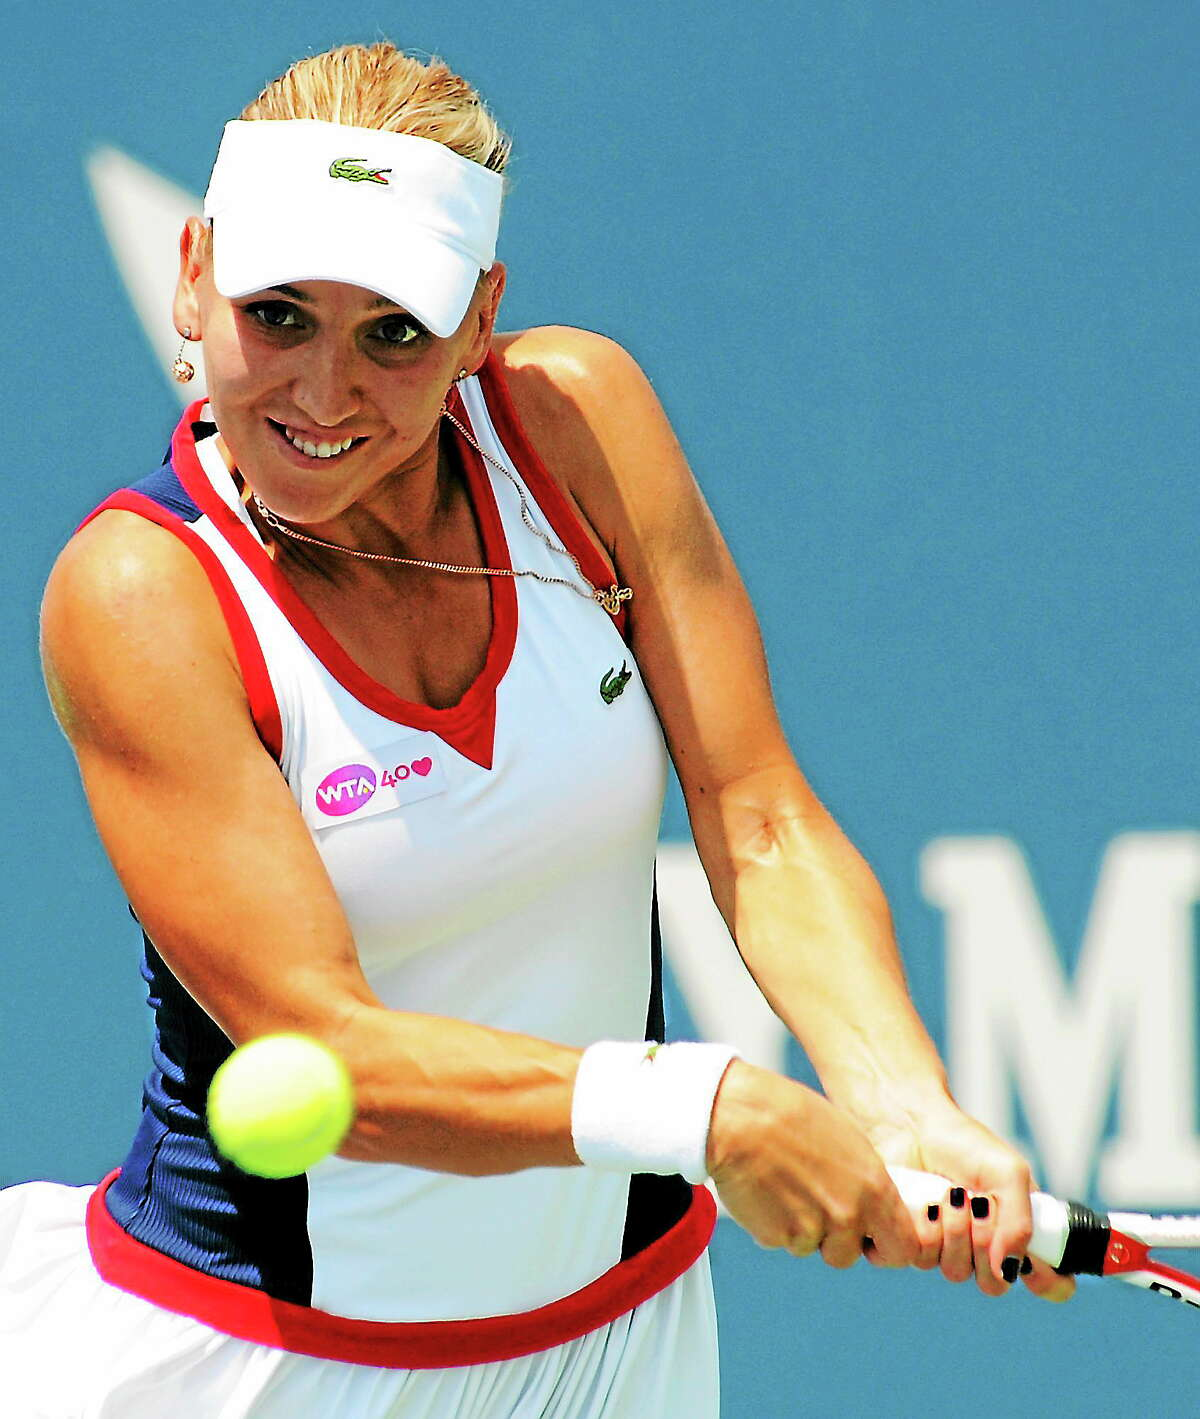 Elena Visnina hits a return to Angelique Kerber at the New Haven Open, Tuesday, Aug. 20, 2013.